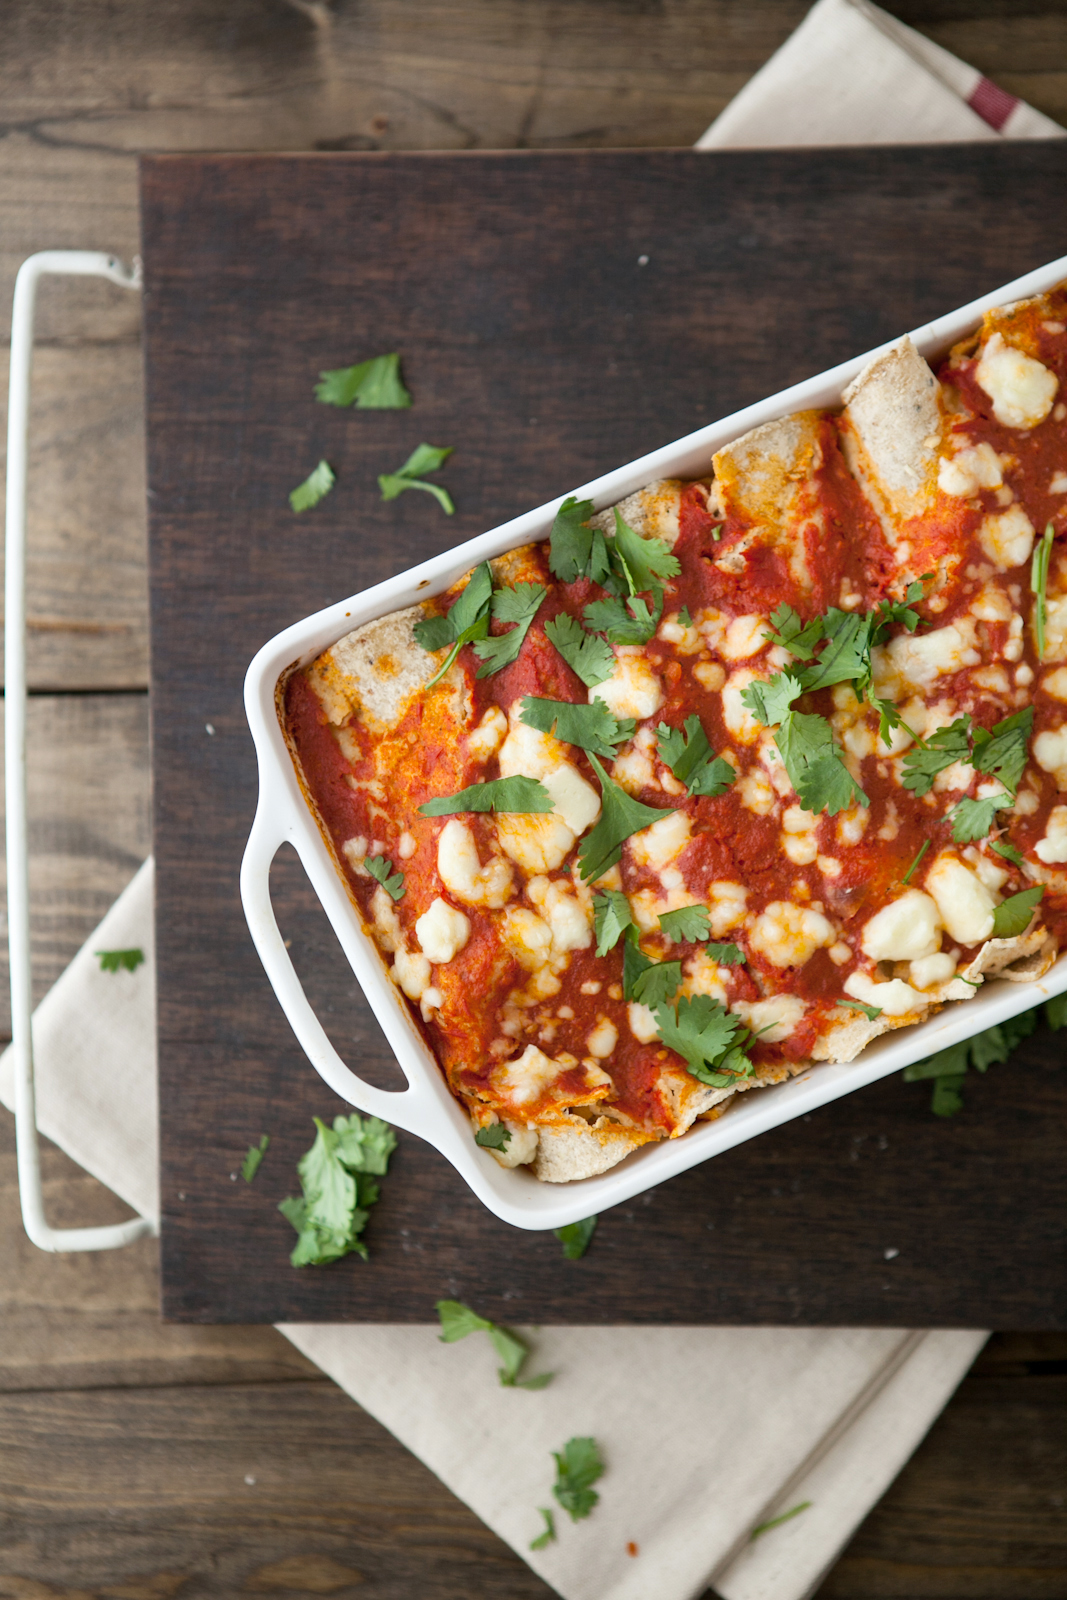 Roasted-Corn-and-Ricotta-Enchiladas-with-Chipotle-Tomato-Sauce